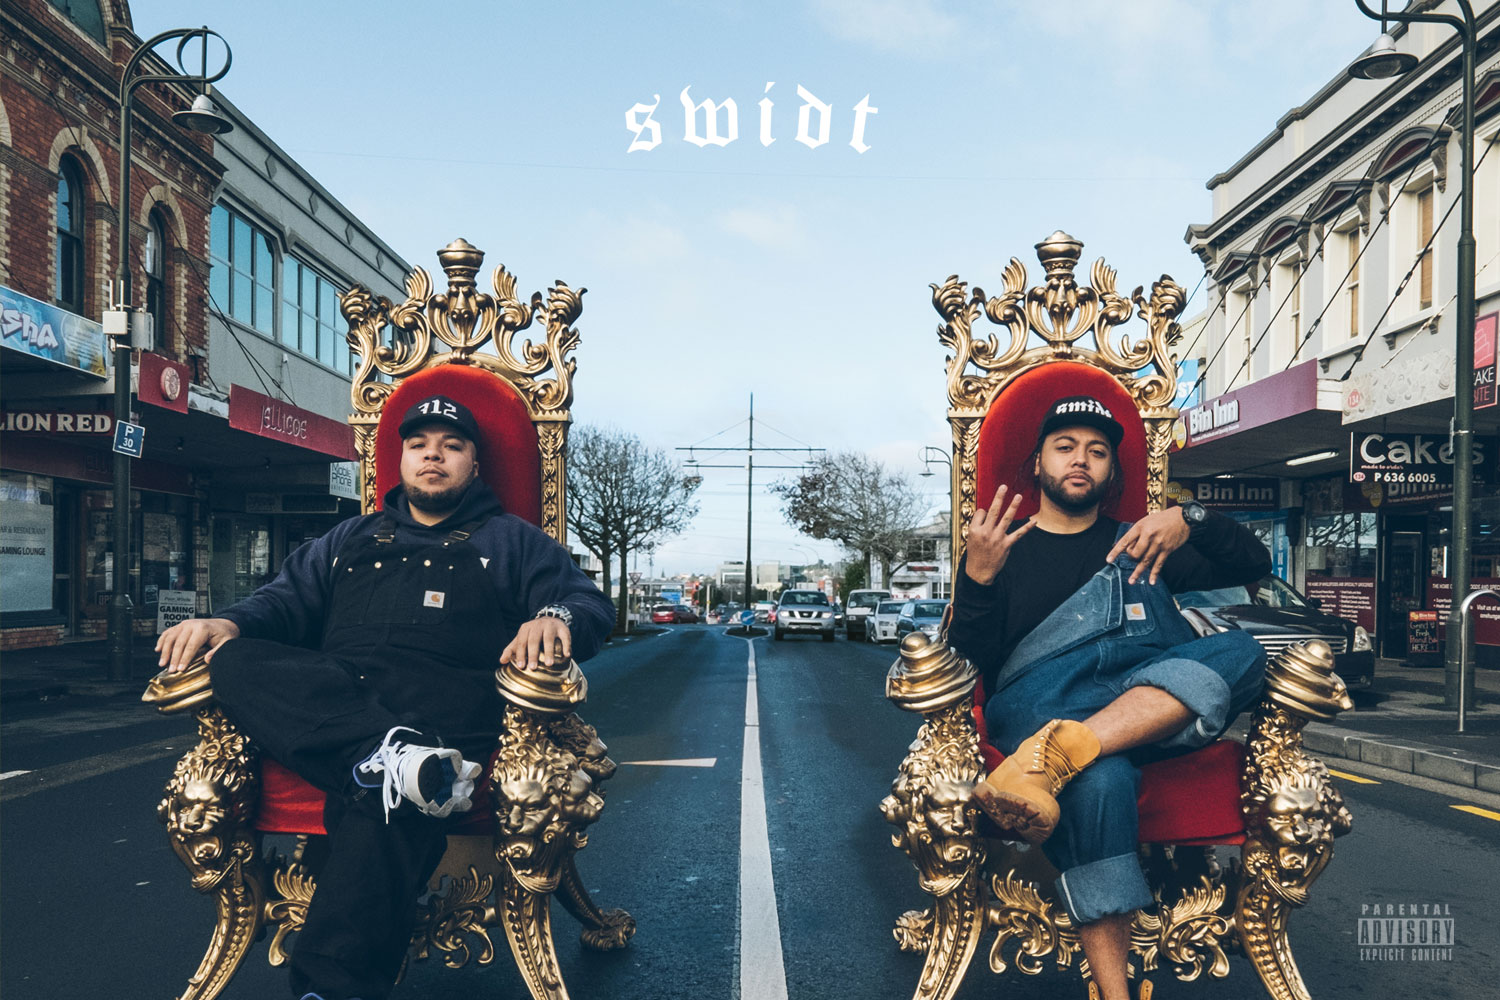 Album cover design - SWIDT